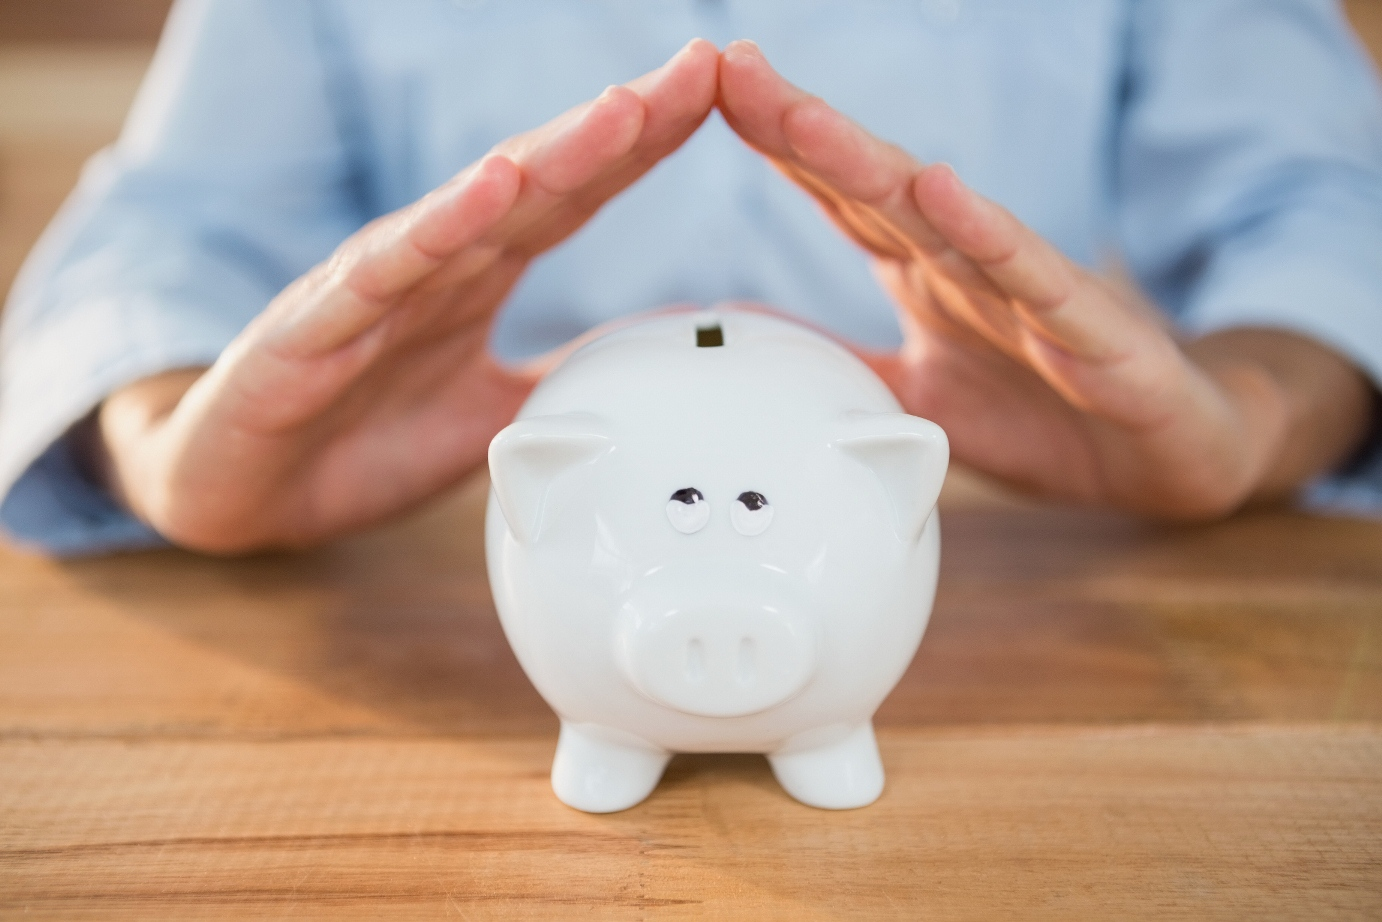 Mid section of man making a roof gesture on piggy bank